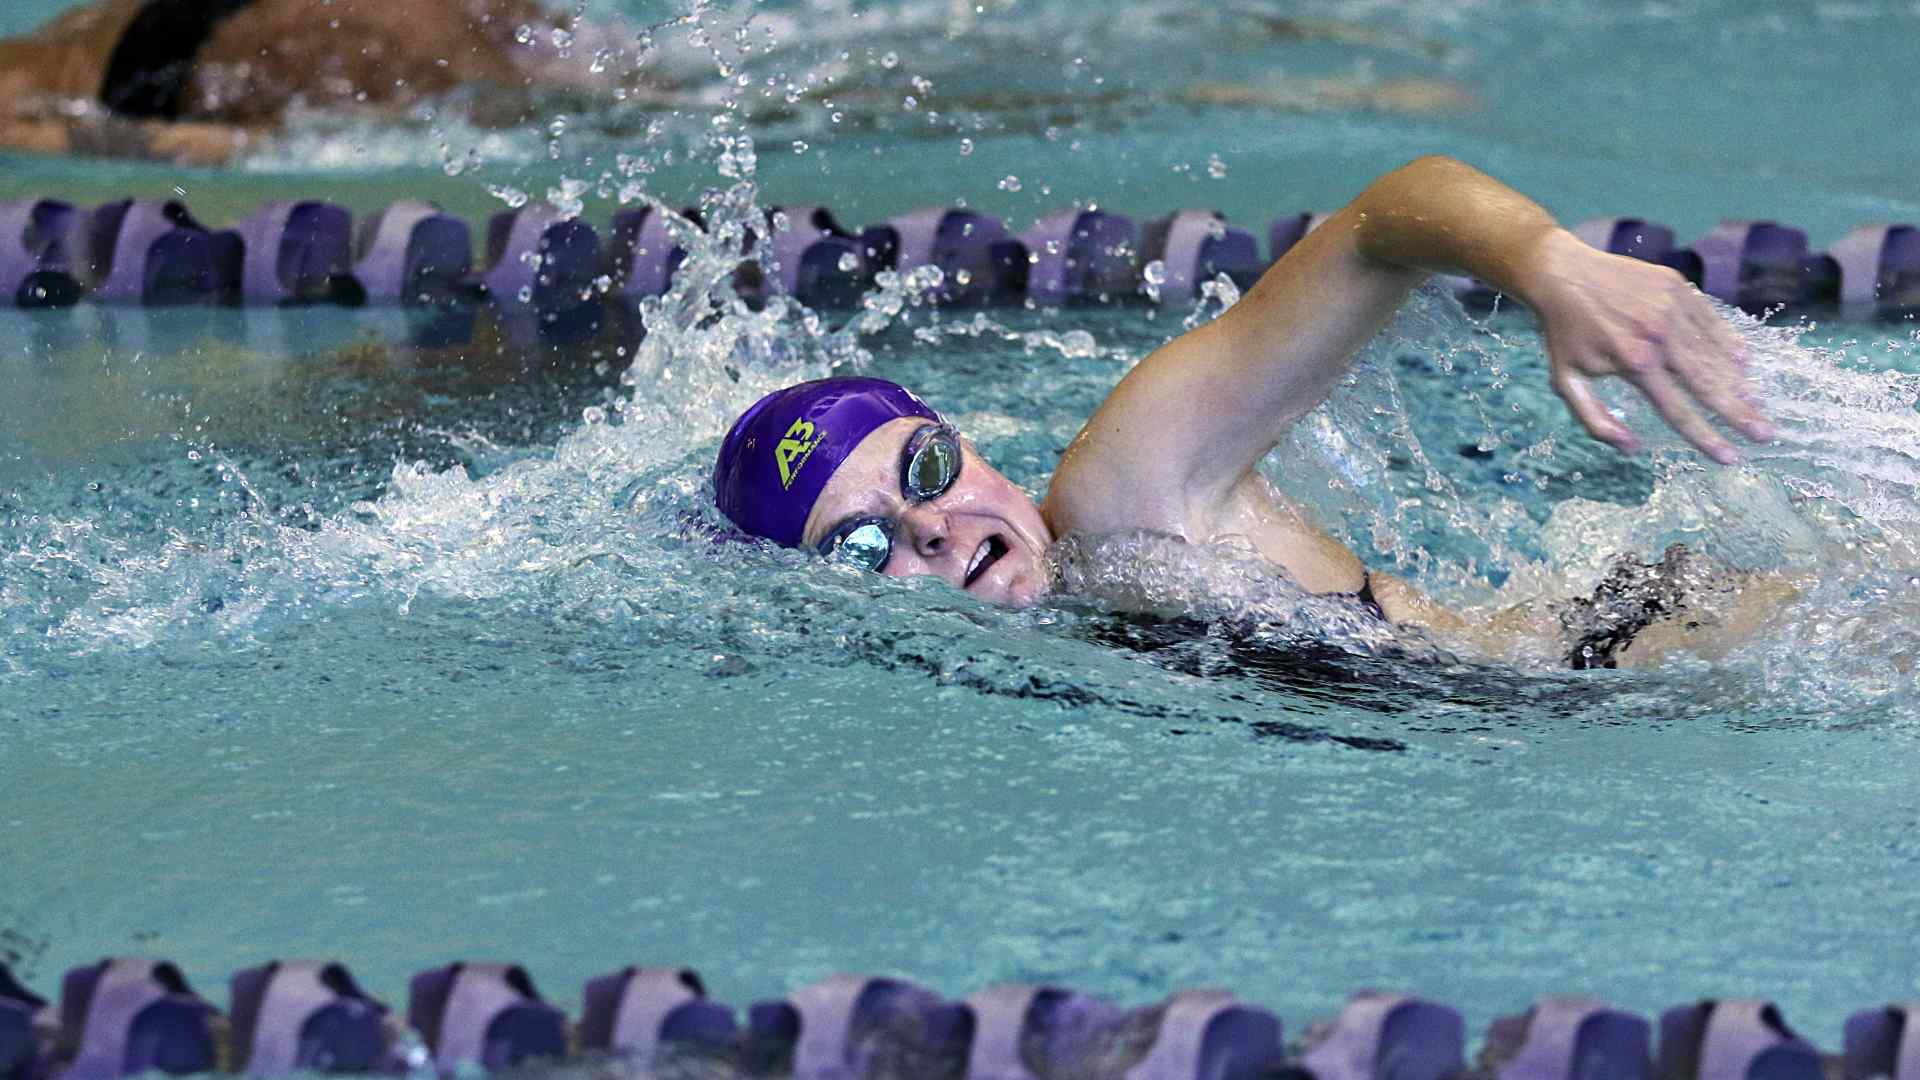 Laurel Rowe Women S Swimming And Diving College Of Idaho Athletics Images, Photos, Reviews